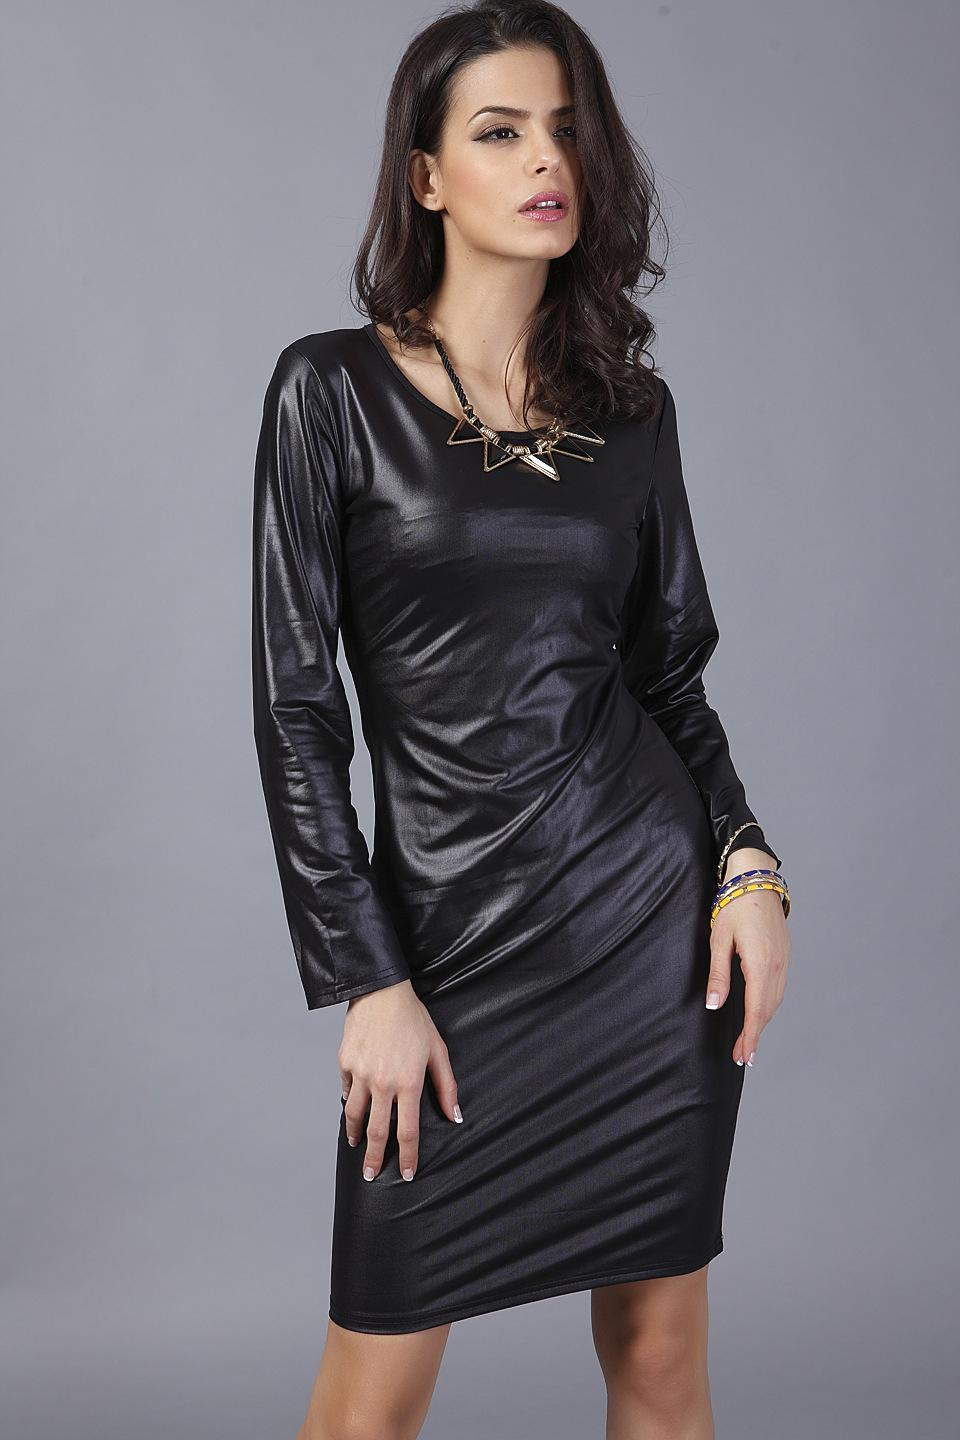 Women Sexy Leather Dress Full Sleeve V Neck One Piece